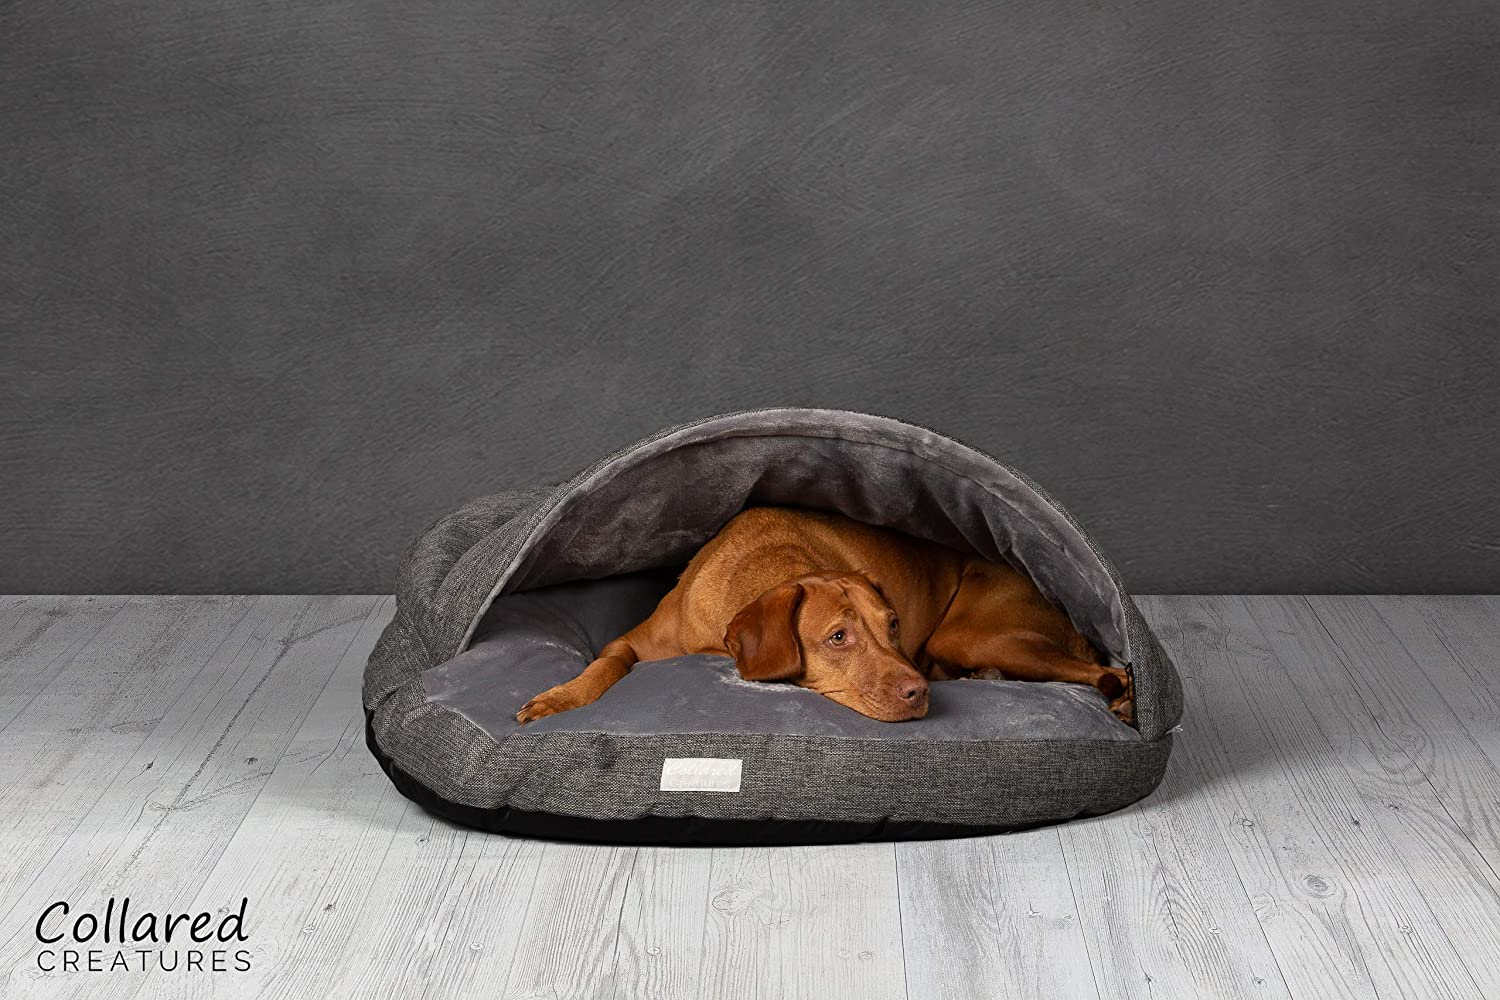 Colletto Creatures, lettino per cani a forma di caverna, grande, 889 mm, grigio, 90 cm Collared Creatures CB-LG-GR